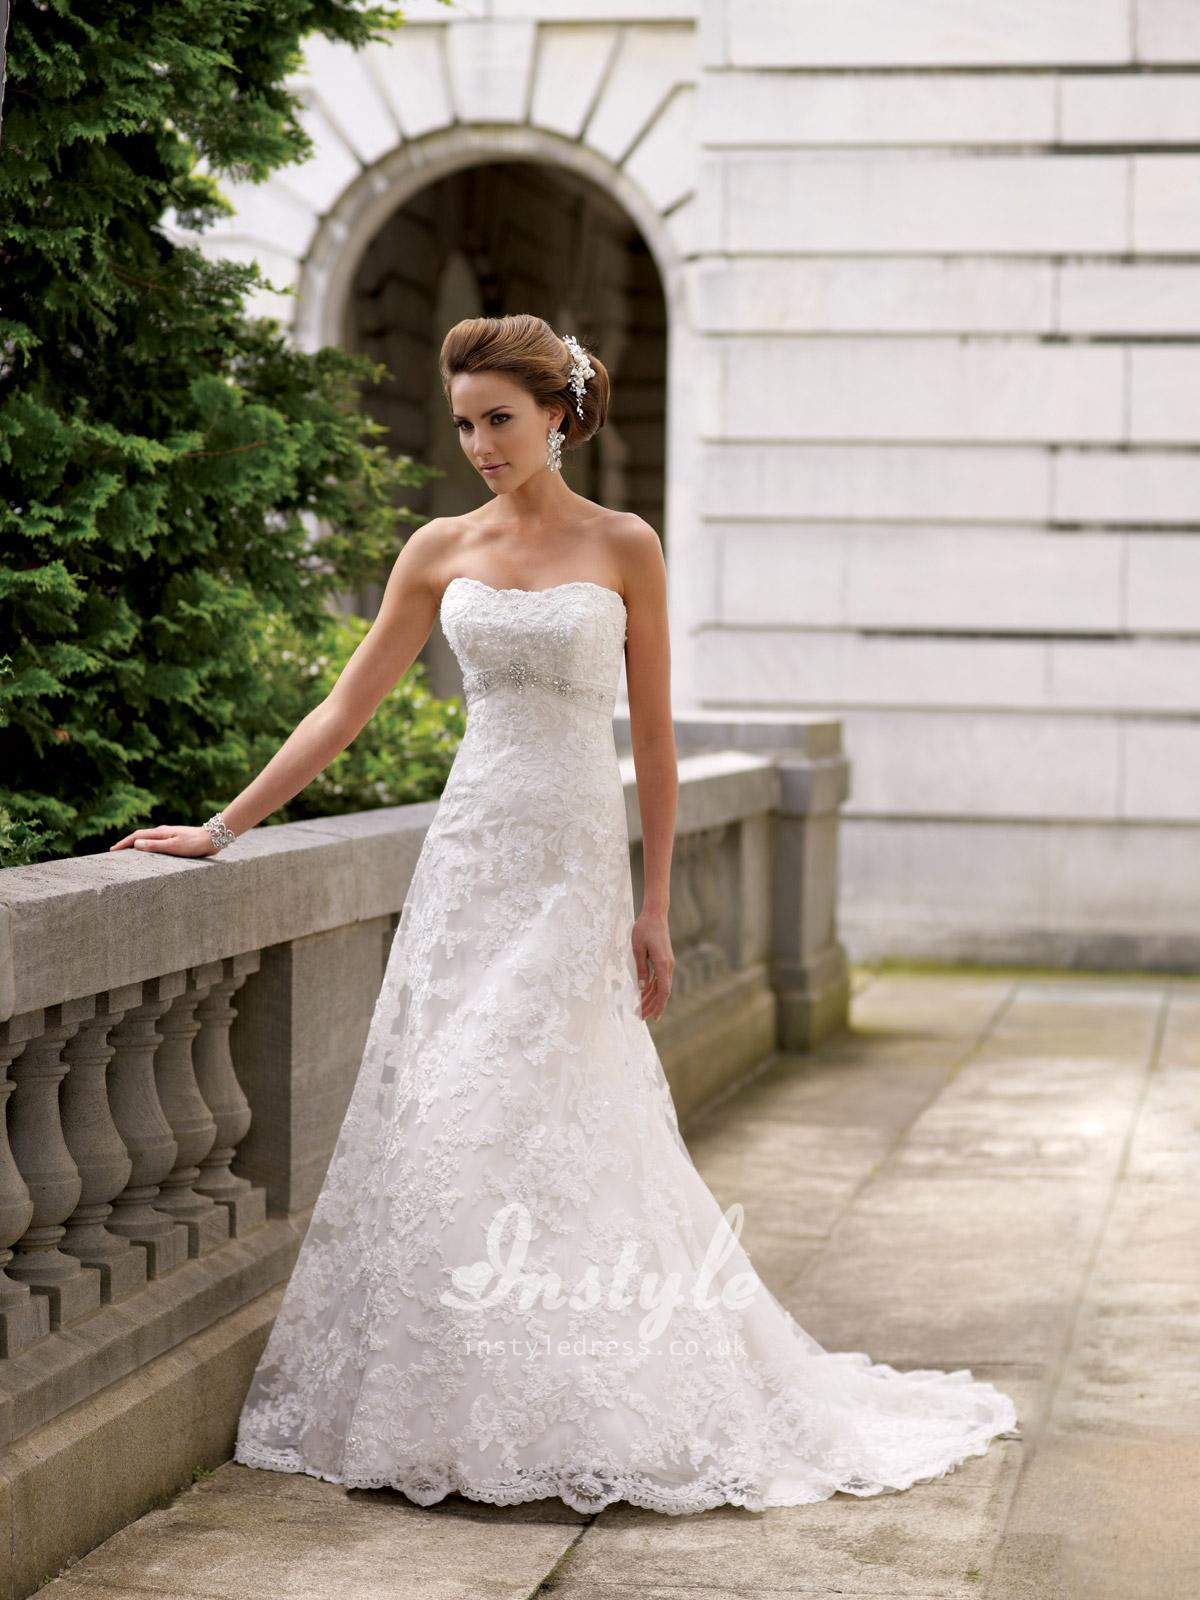 Looking Classical and Vintage with Strapless Lace Wedding